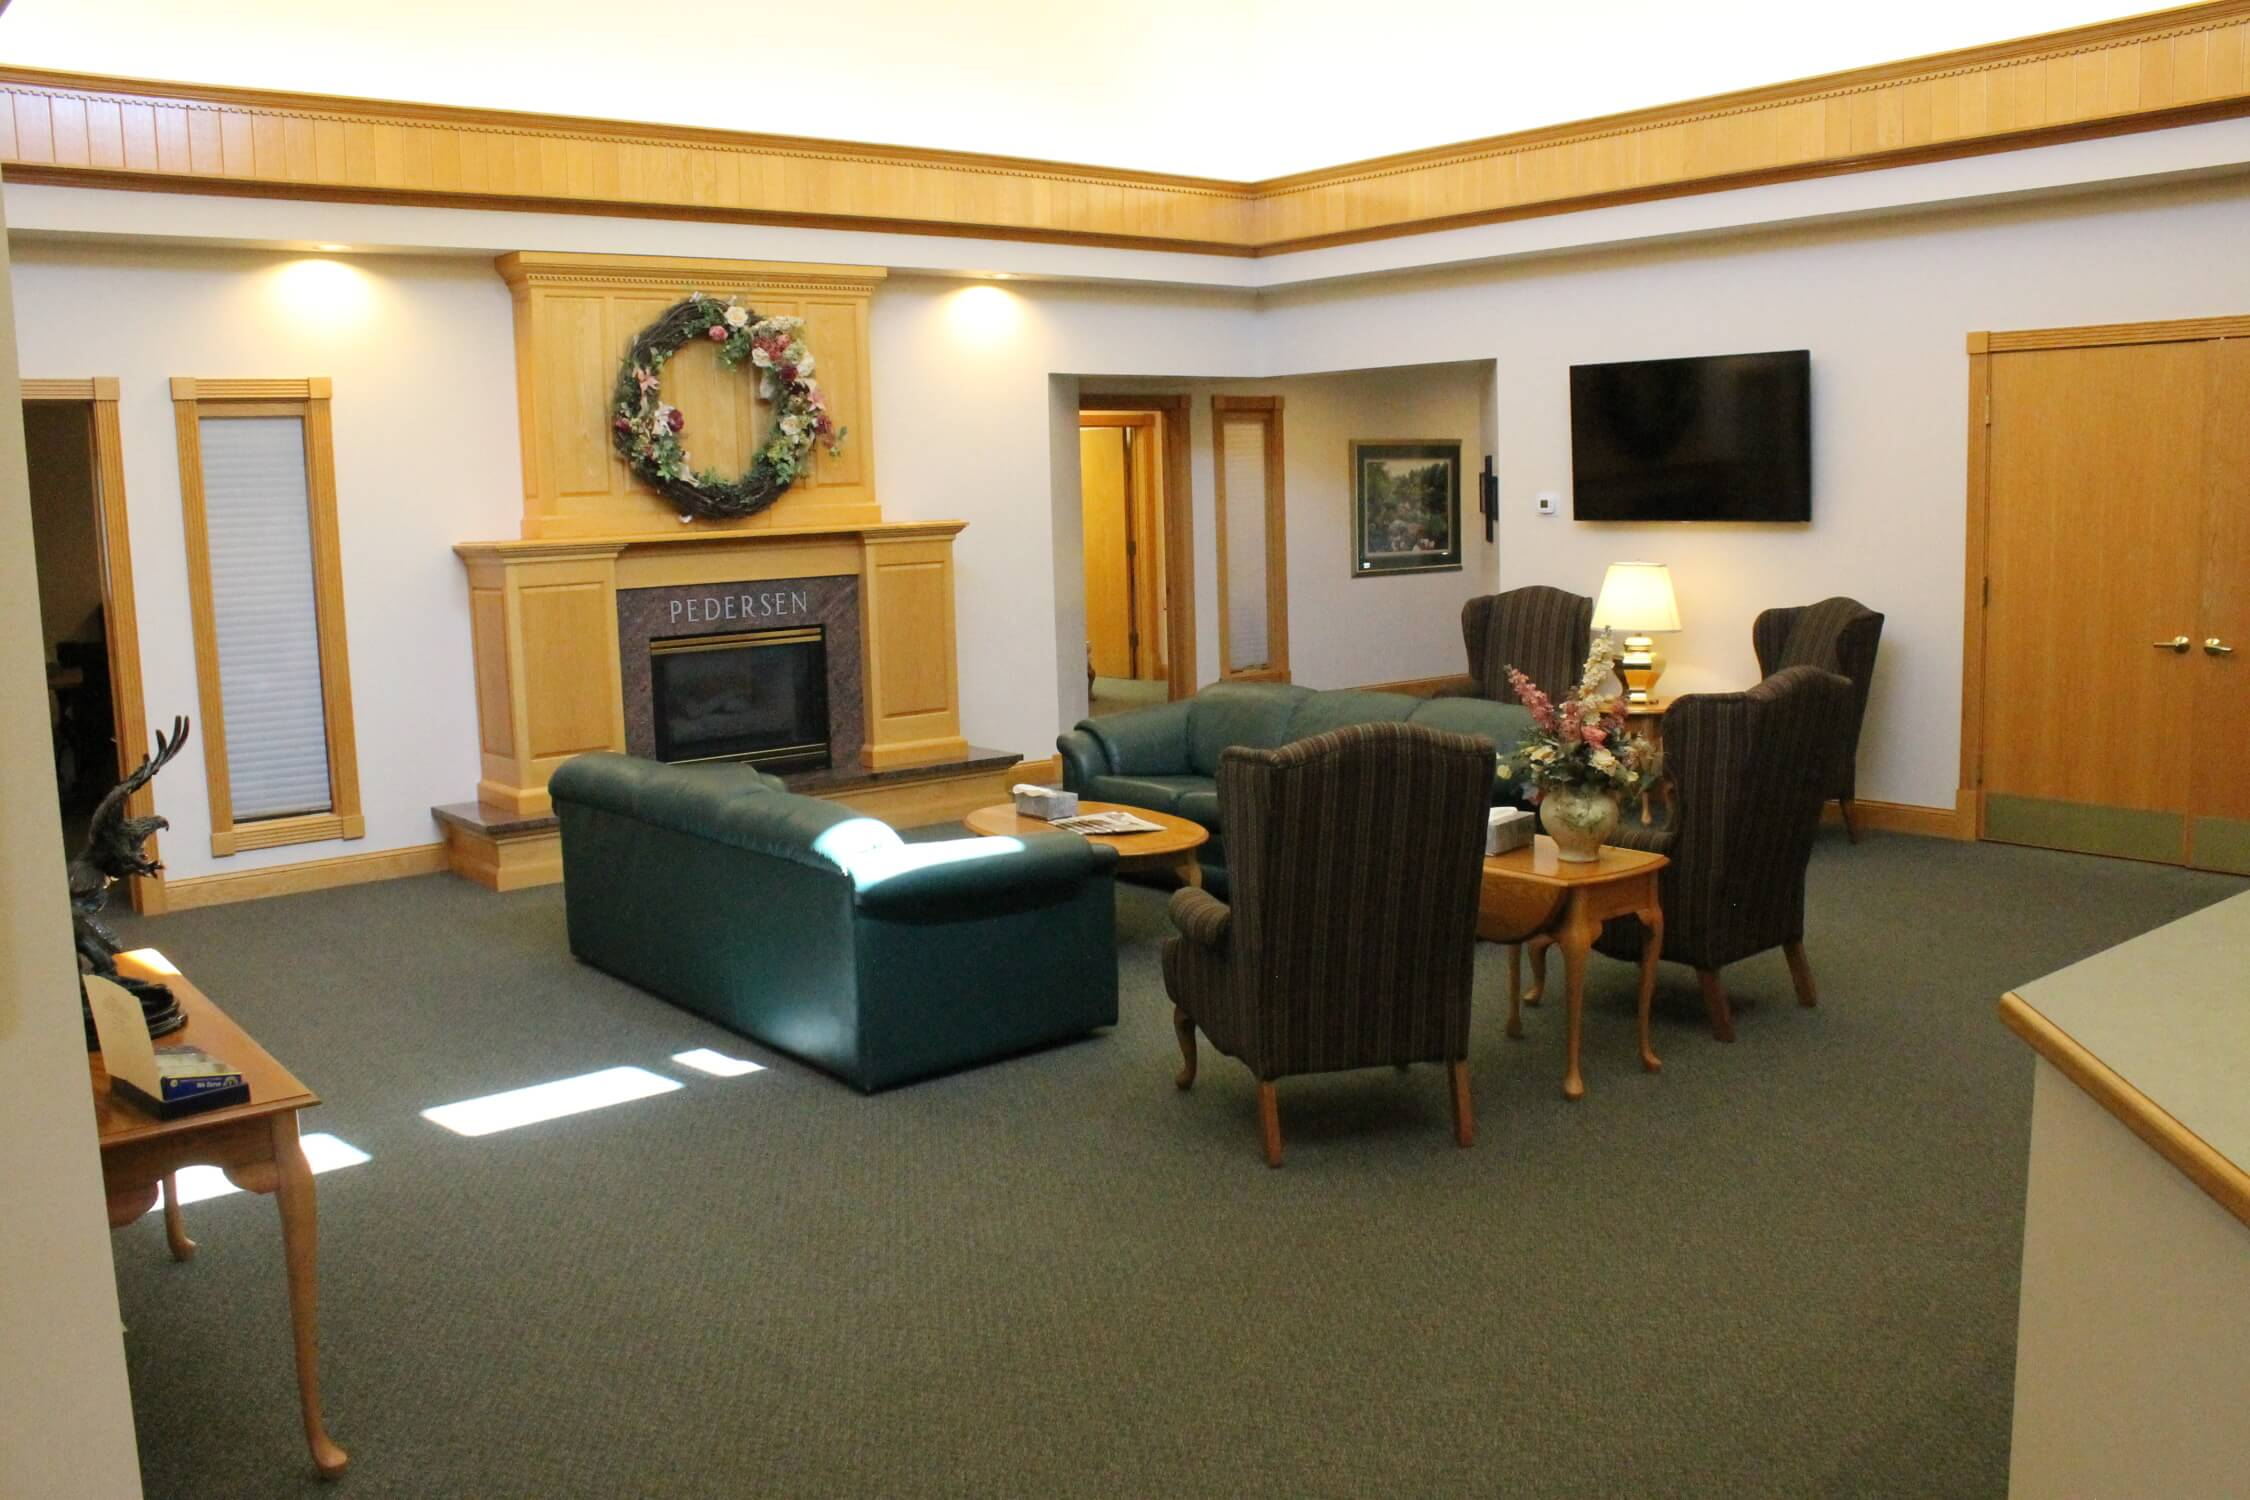 The Pedersen And Starbuck Funeral Homes Provides Individualized Services Designed To Meet Needs Of Each Family